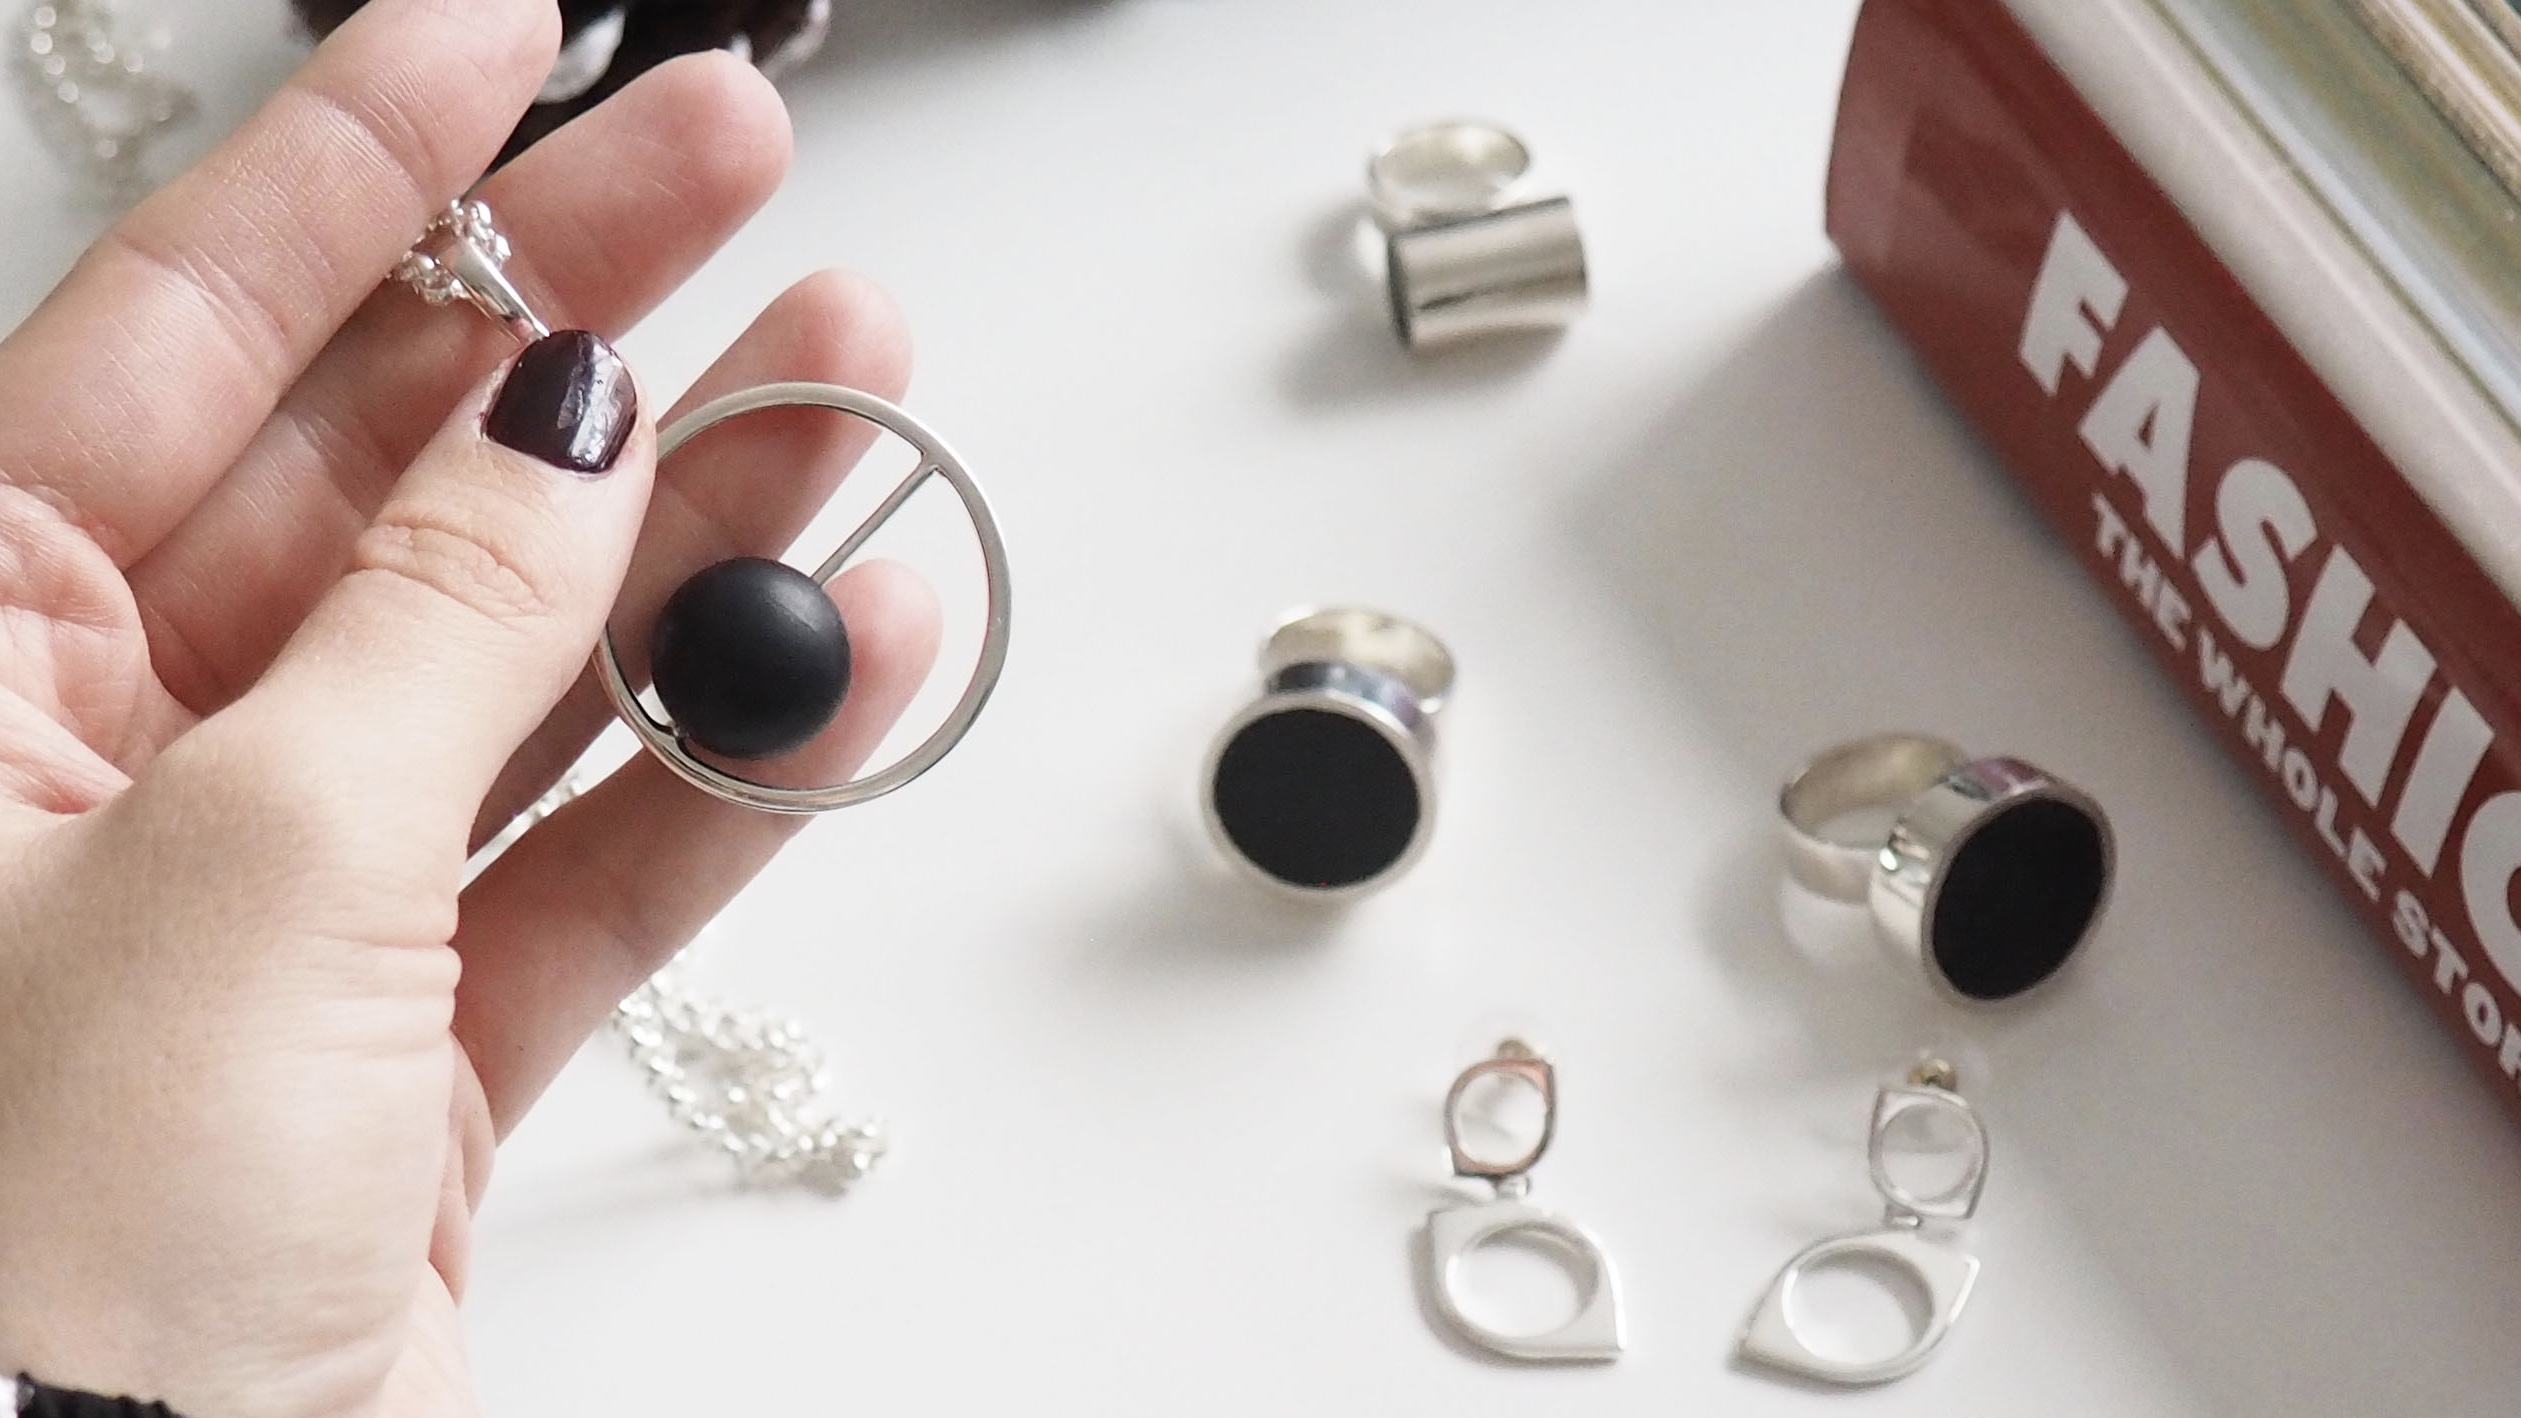 silversmycken med onyx, silver jewellery with onyx